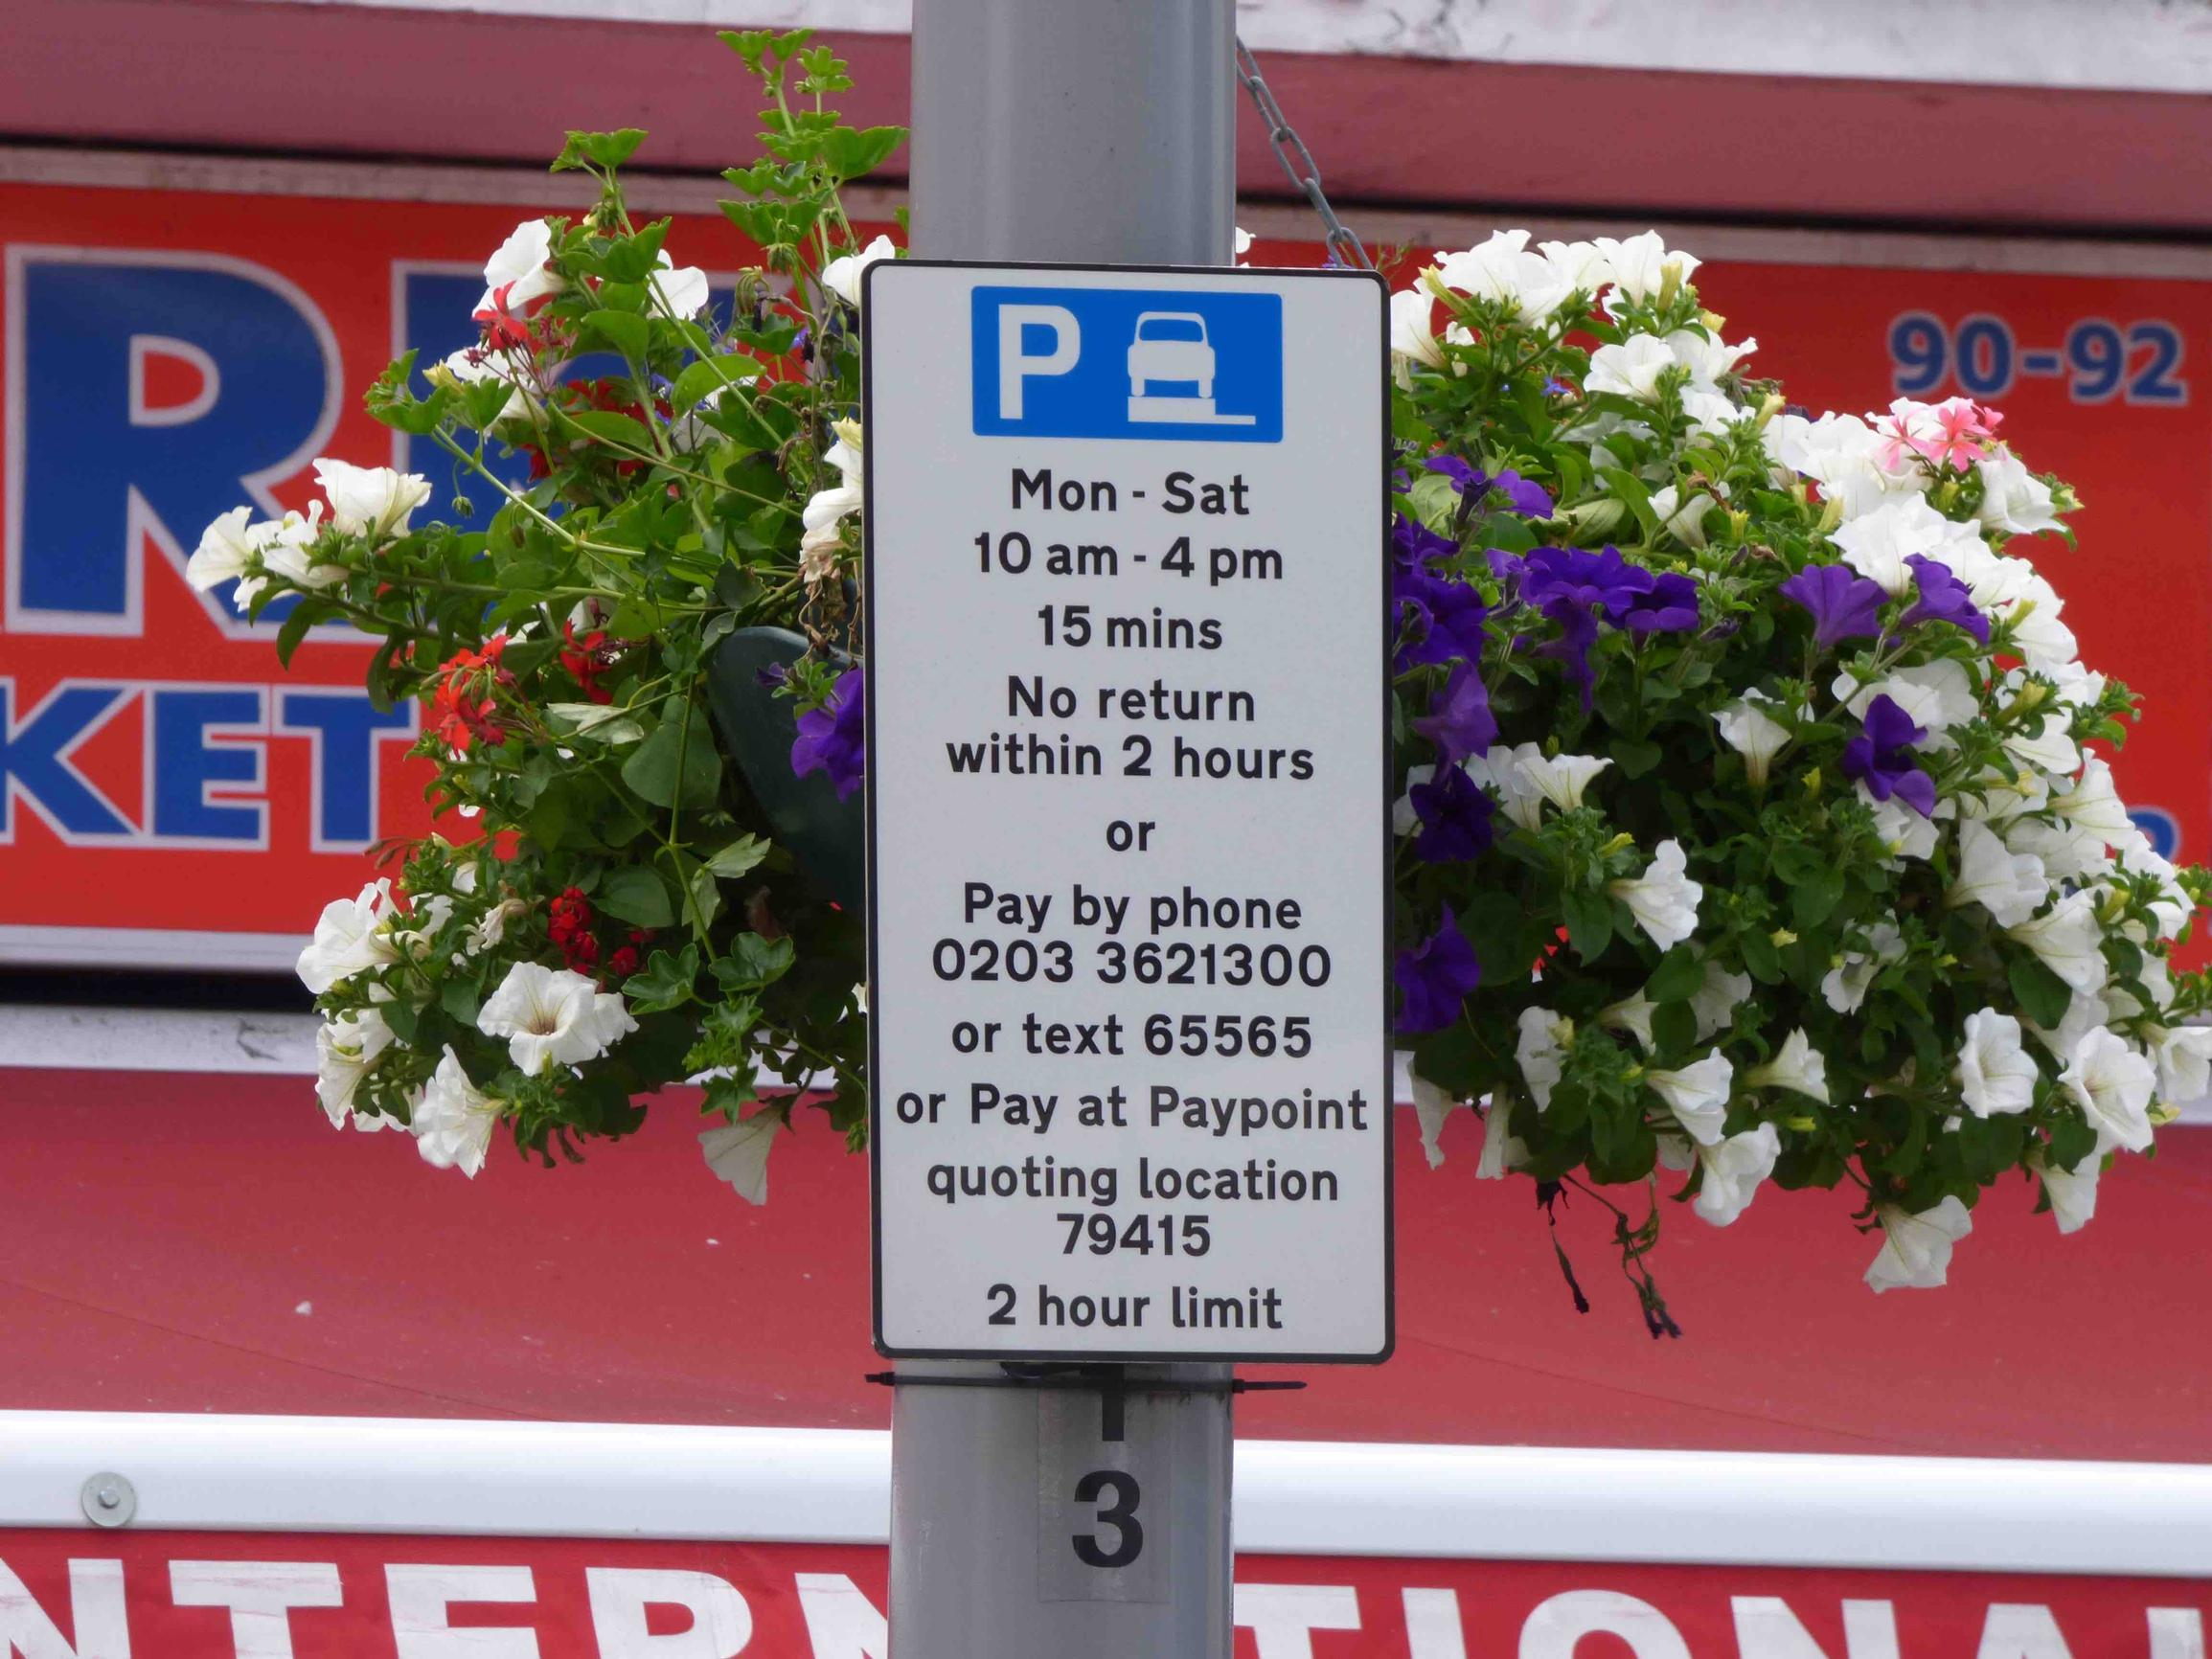 Free parking extension in Waltham Forest